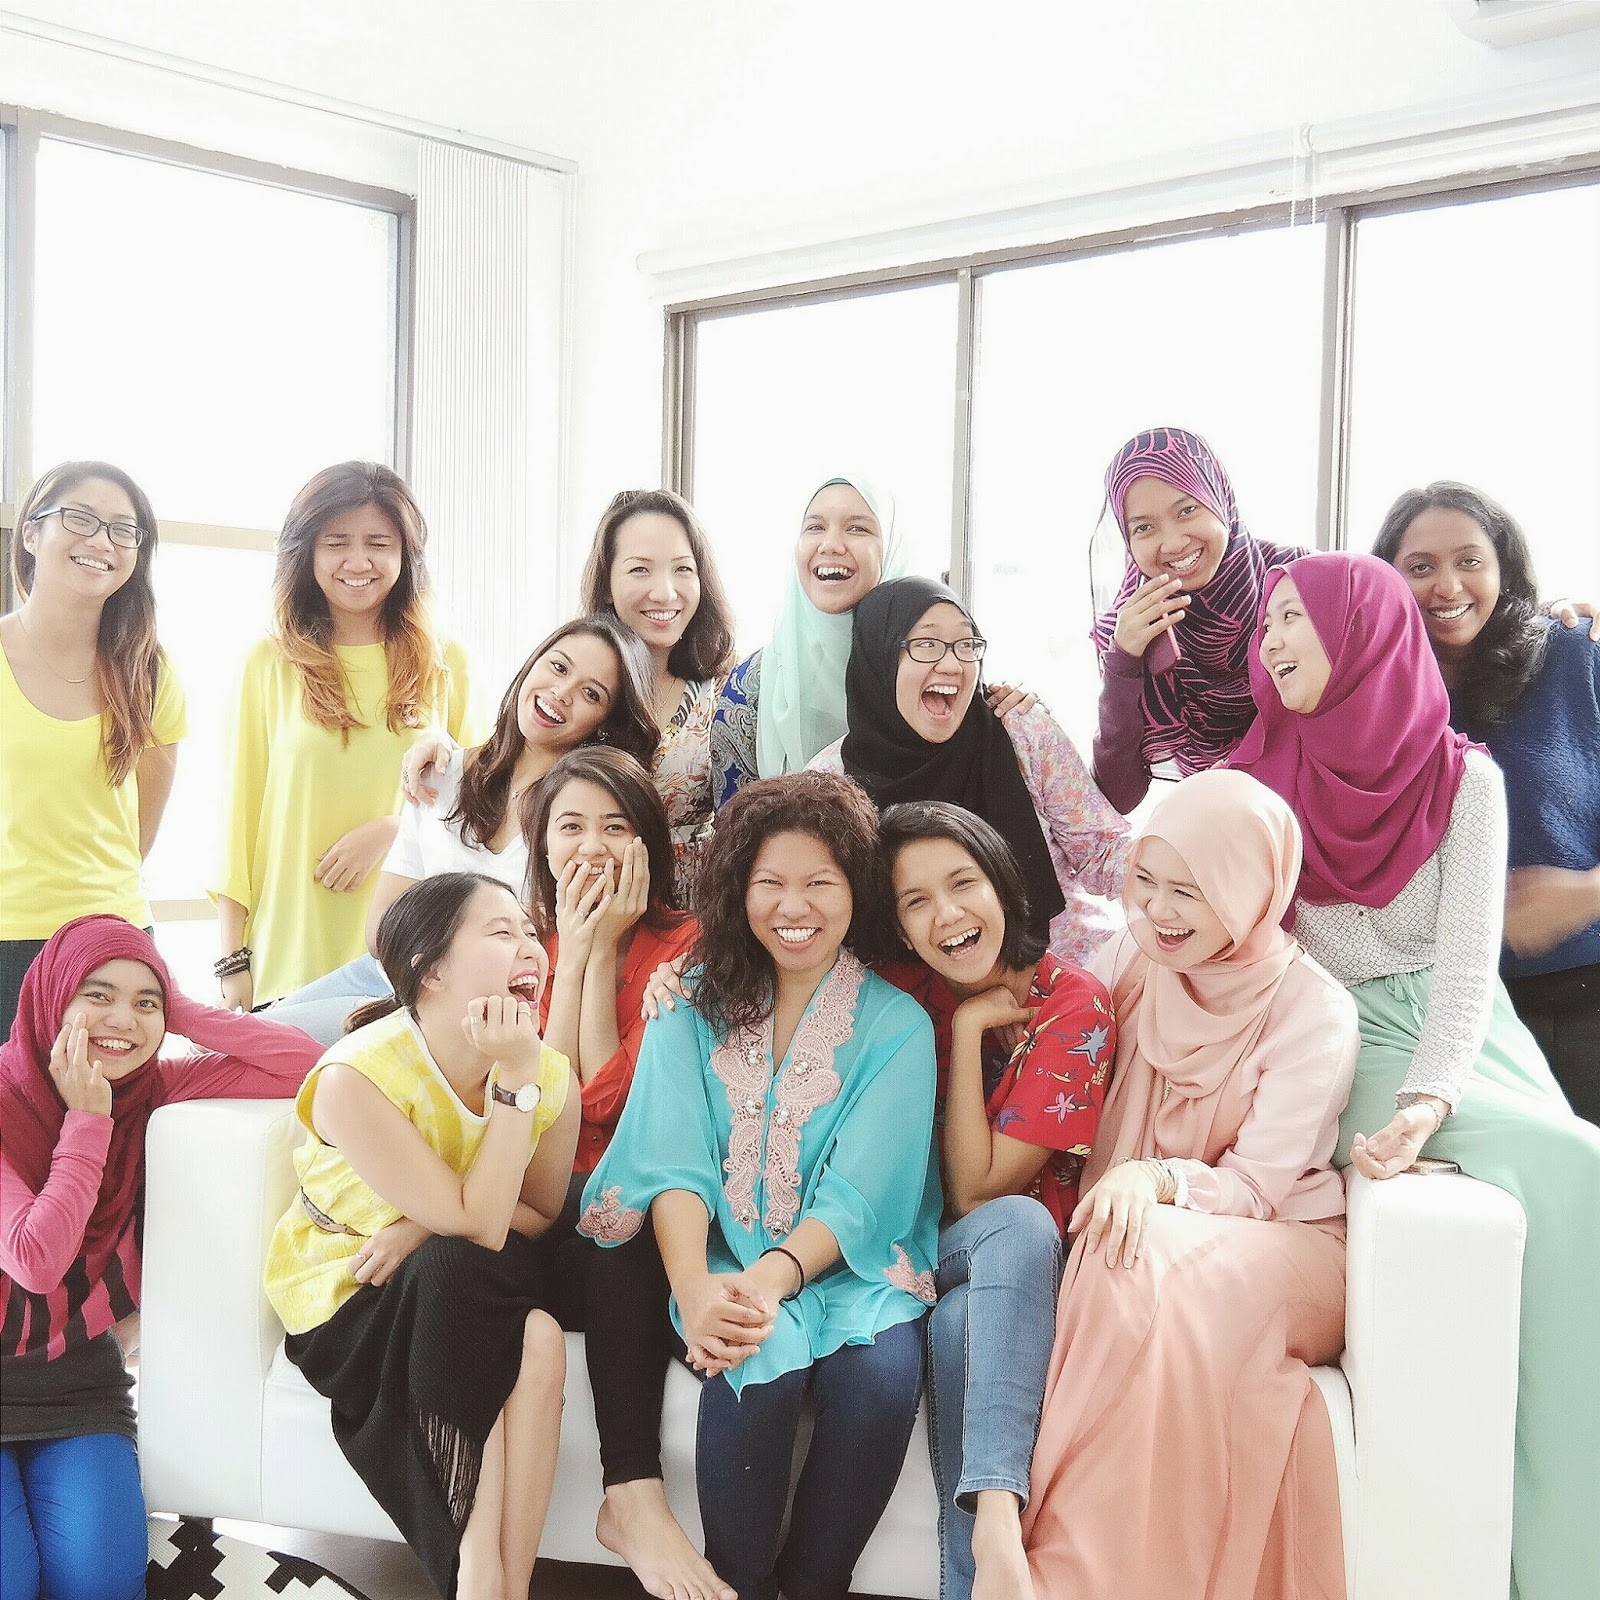 The Unexpected Move and A Short Farewell - R Nadia Sabrina